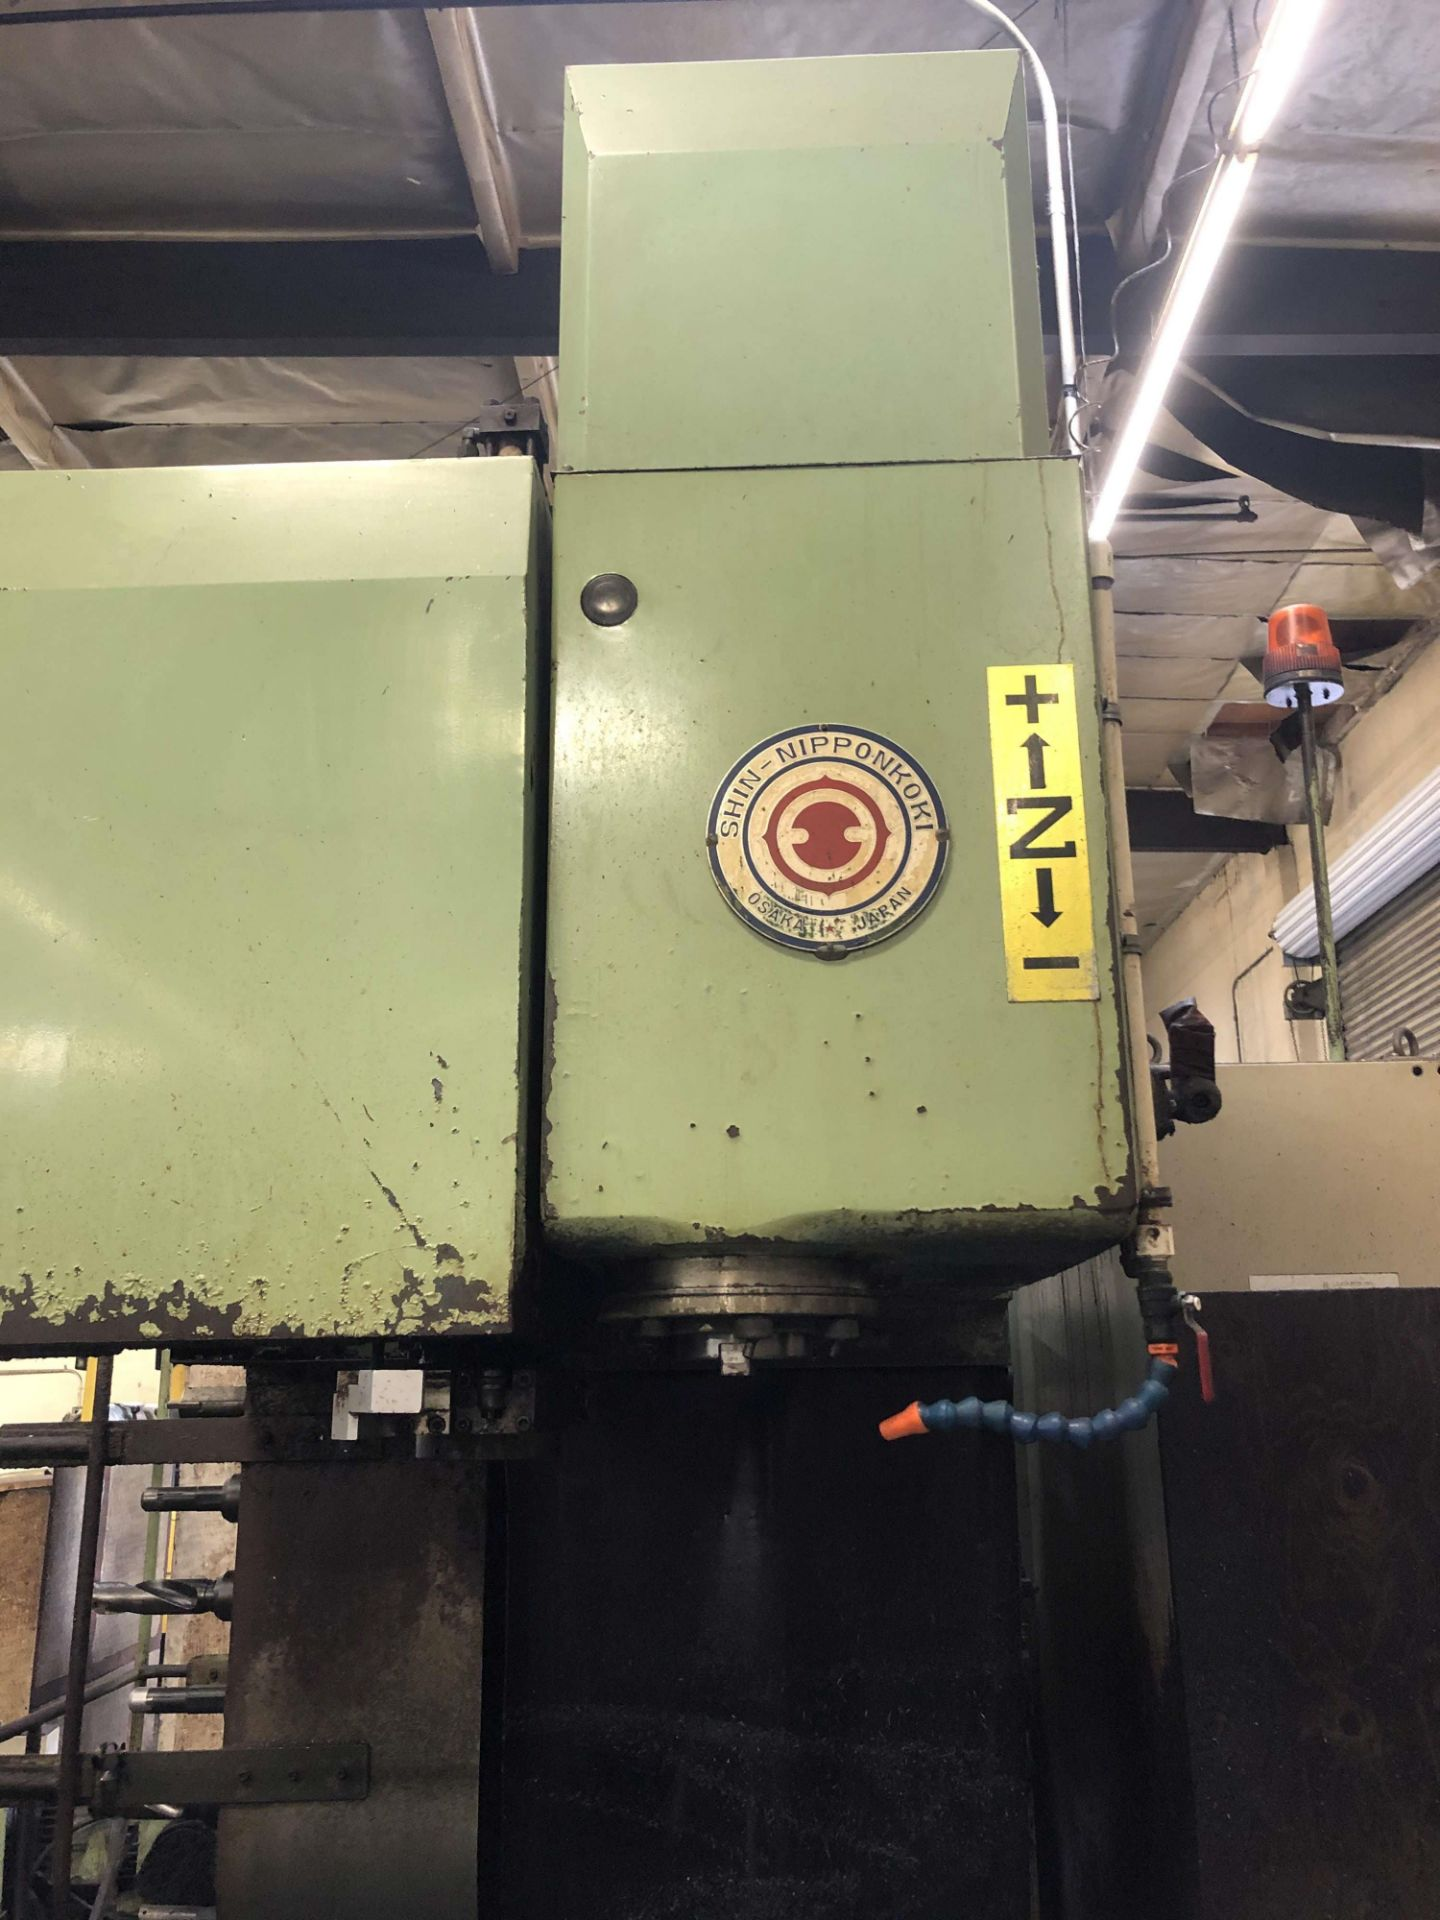 "Lot 41 - SNK FSP-70V Vertical Machining Center, 27-1/2"" x 60-1/2"" Table, 24 ATC, Fanuc 11M Control"